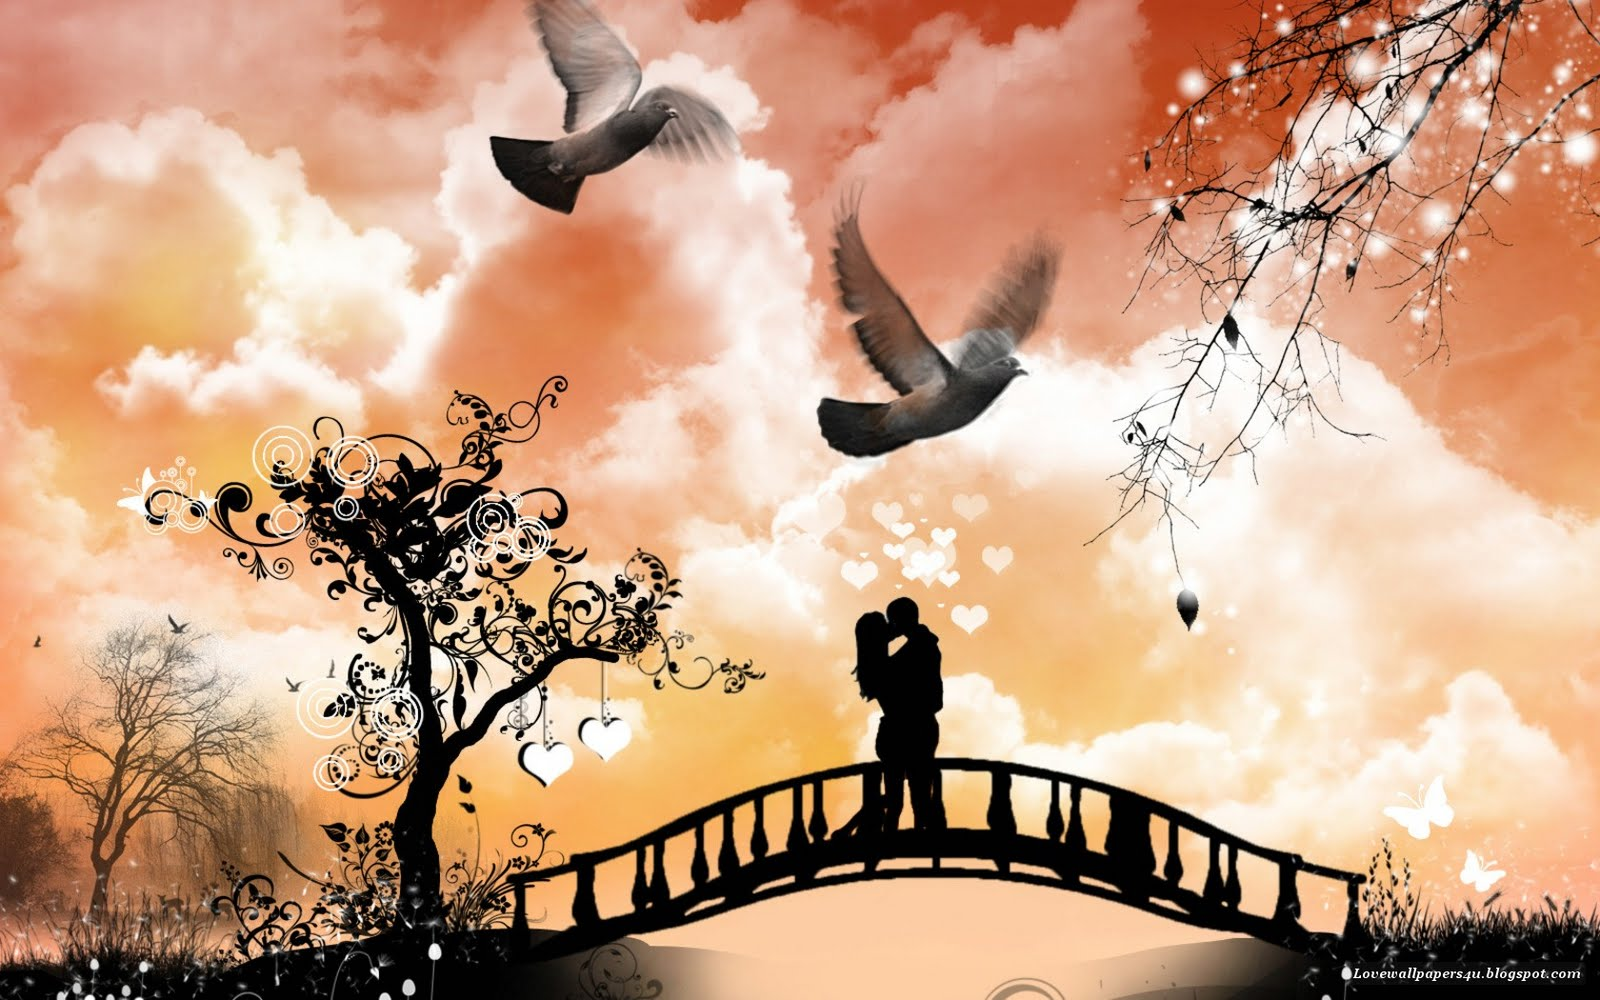 Love Wallpaper cartoon Hd : iWallpapers: LOVE WALLPAPERS HD